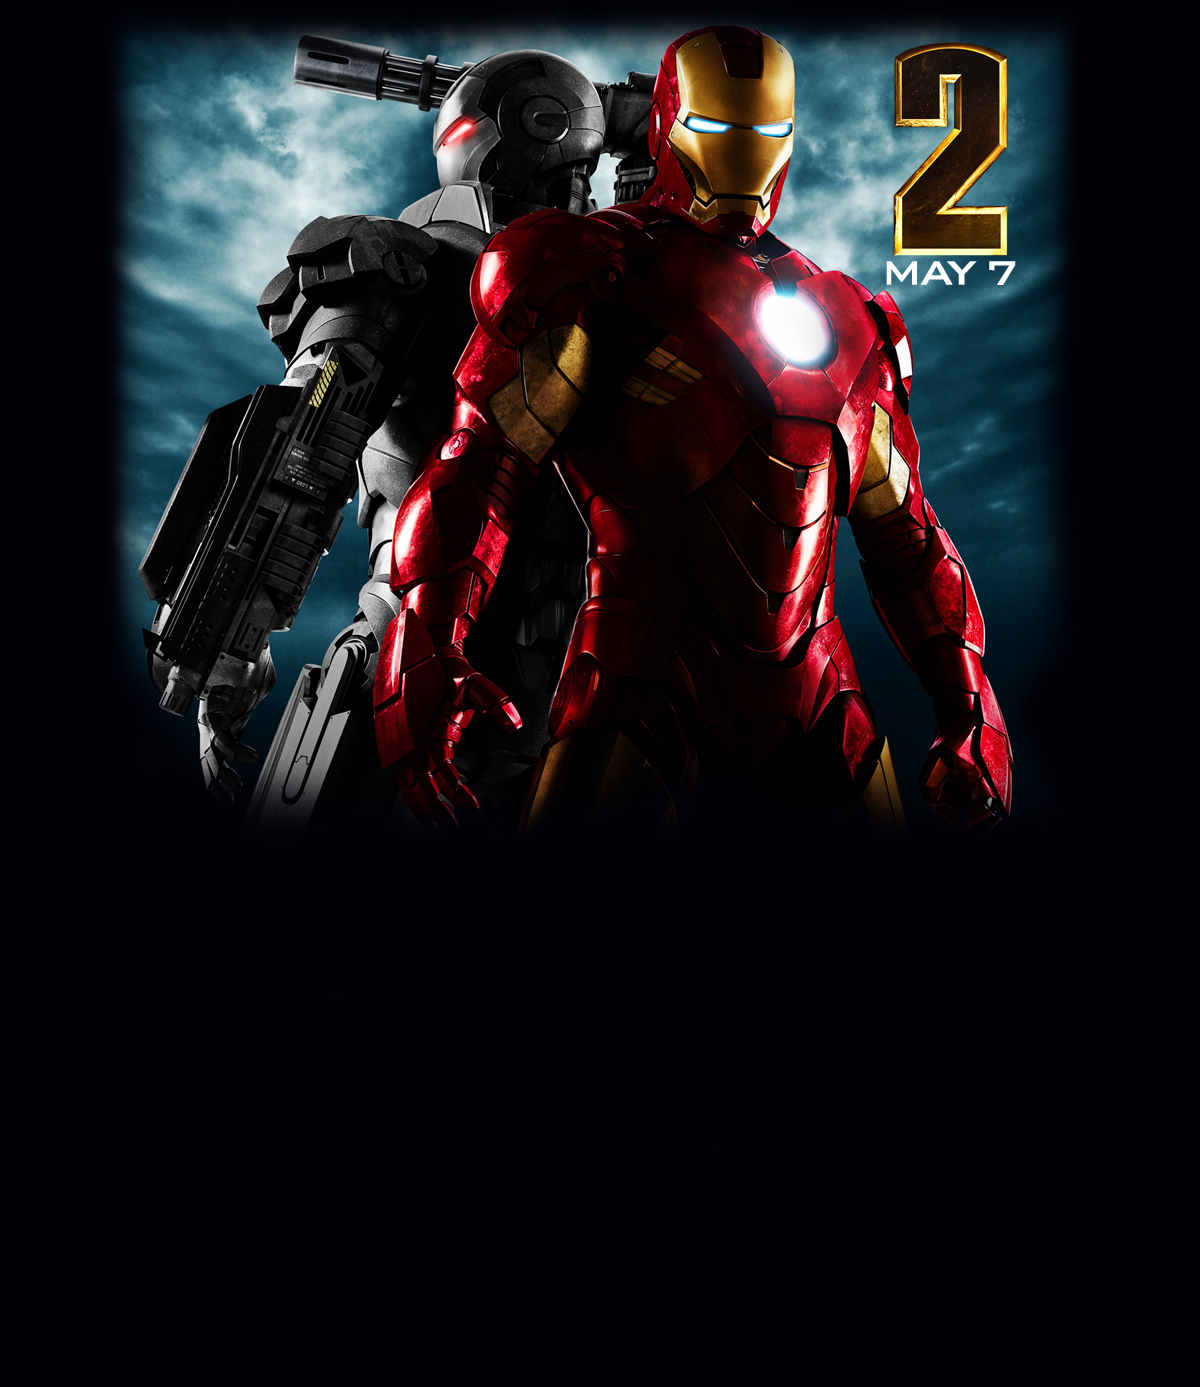 Apple - Movie Trailers - ironman